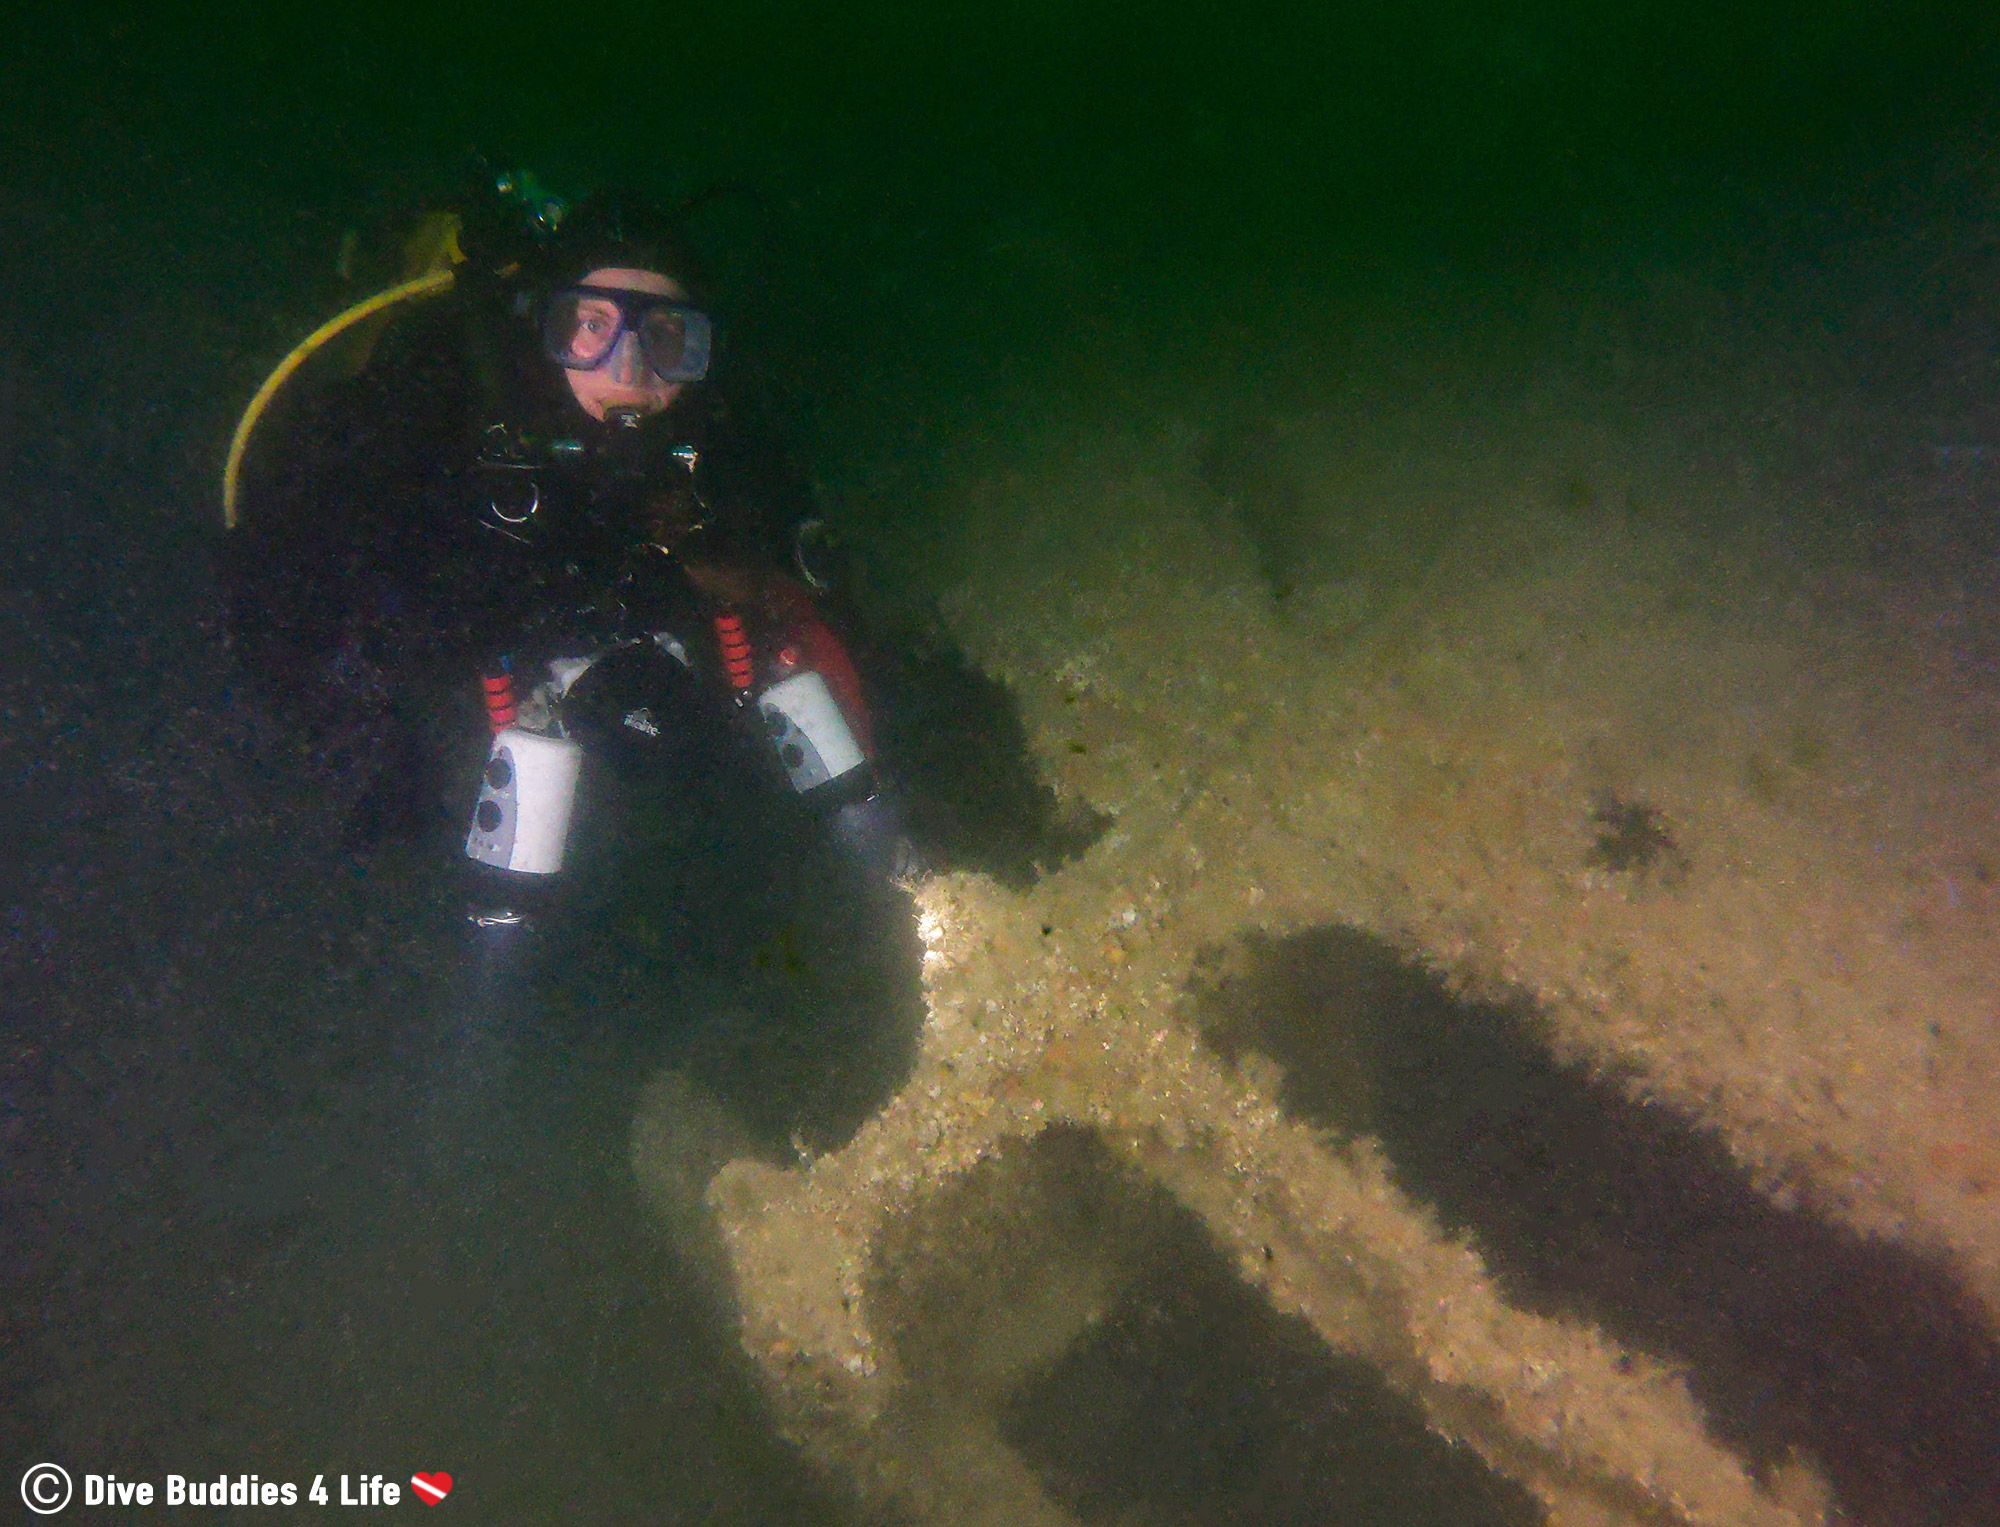 Ali Scuba Diving With A D Day Wreck In Normandy, France